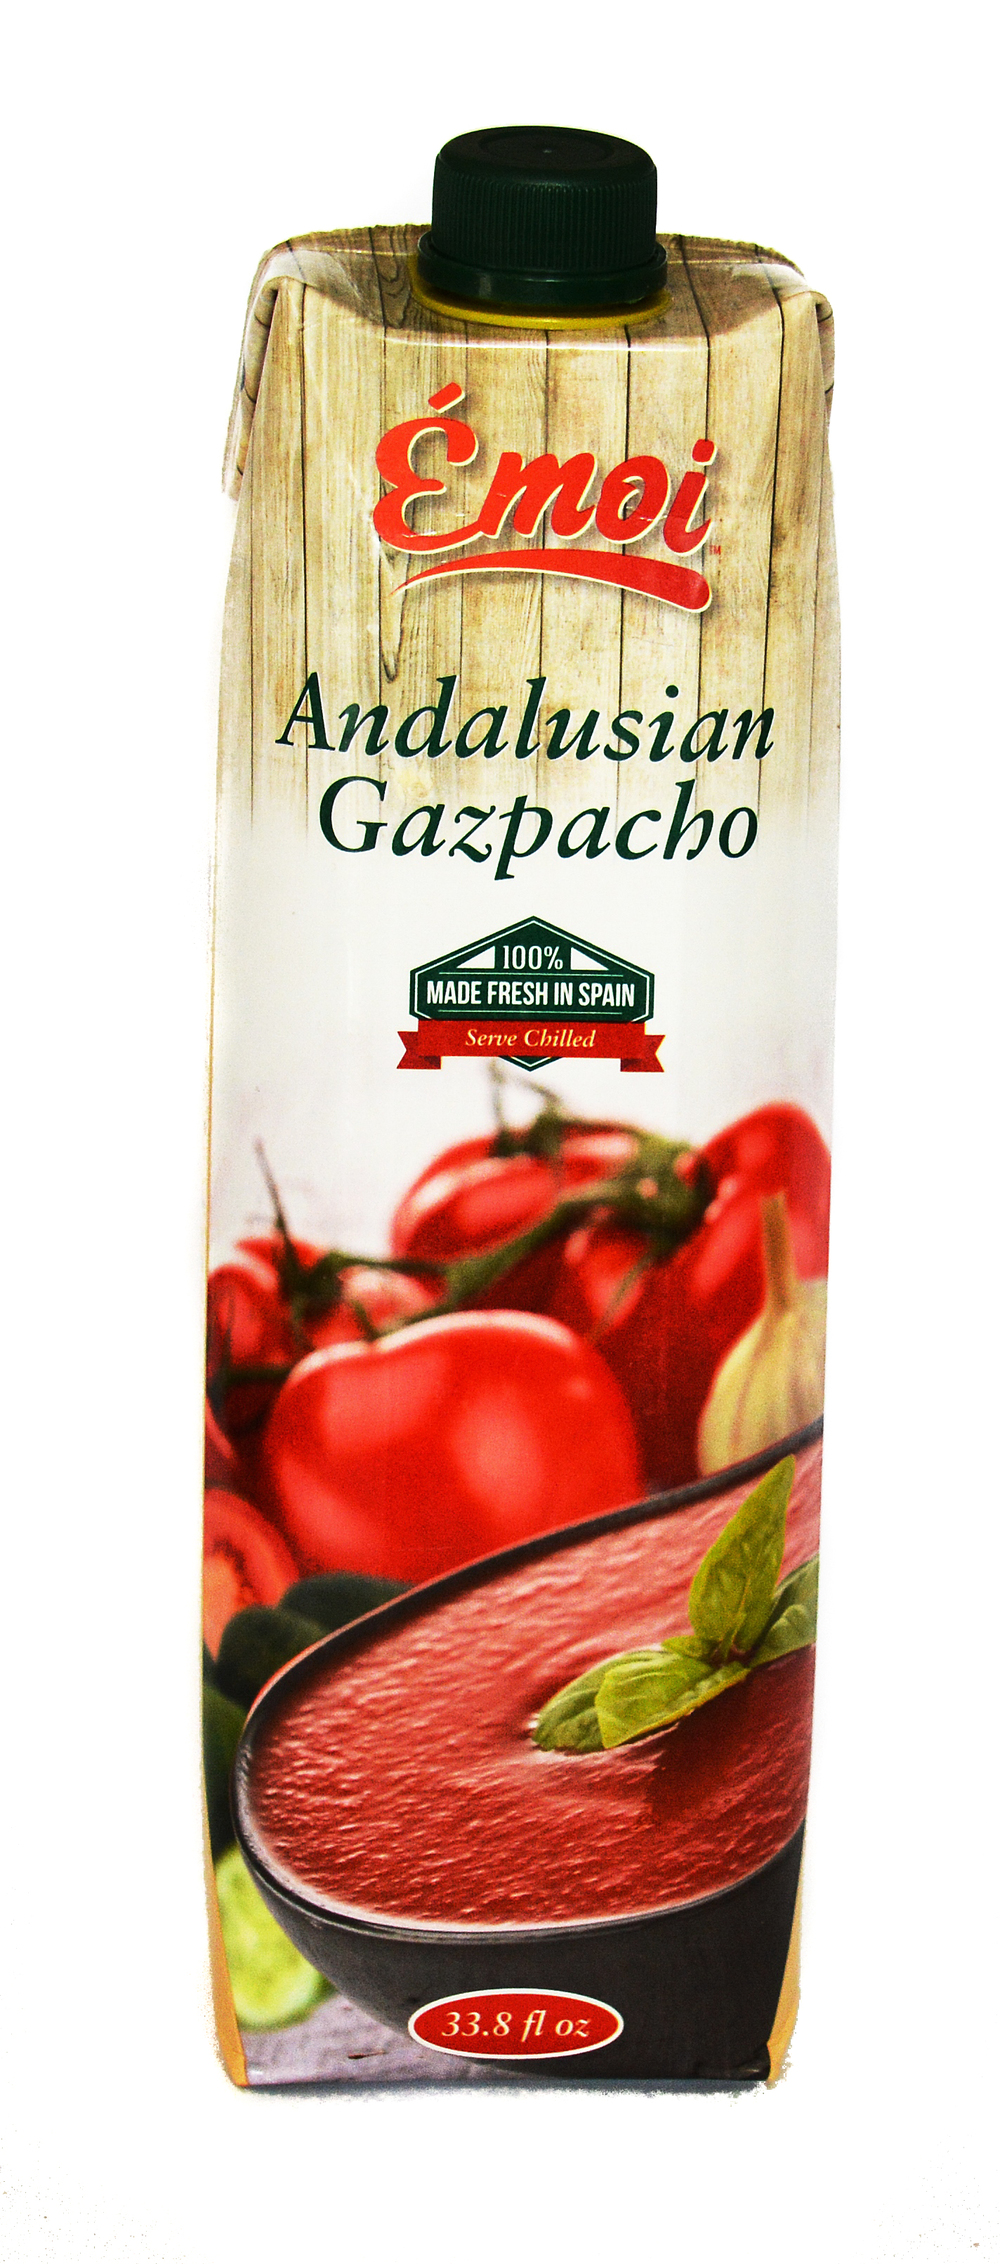 Fresh Tomatoes, water, green peppers, extra virgin olive oil, cucumber, bread (wheat flour, water, salt, yeast), sherry vinegar, garlic, and salt.  Shelf Stable 12 months from production date  Made from conventional ingredients not genetically modified.  10 per case  33.8 oz  UPC 7.99418.05559.6